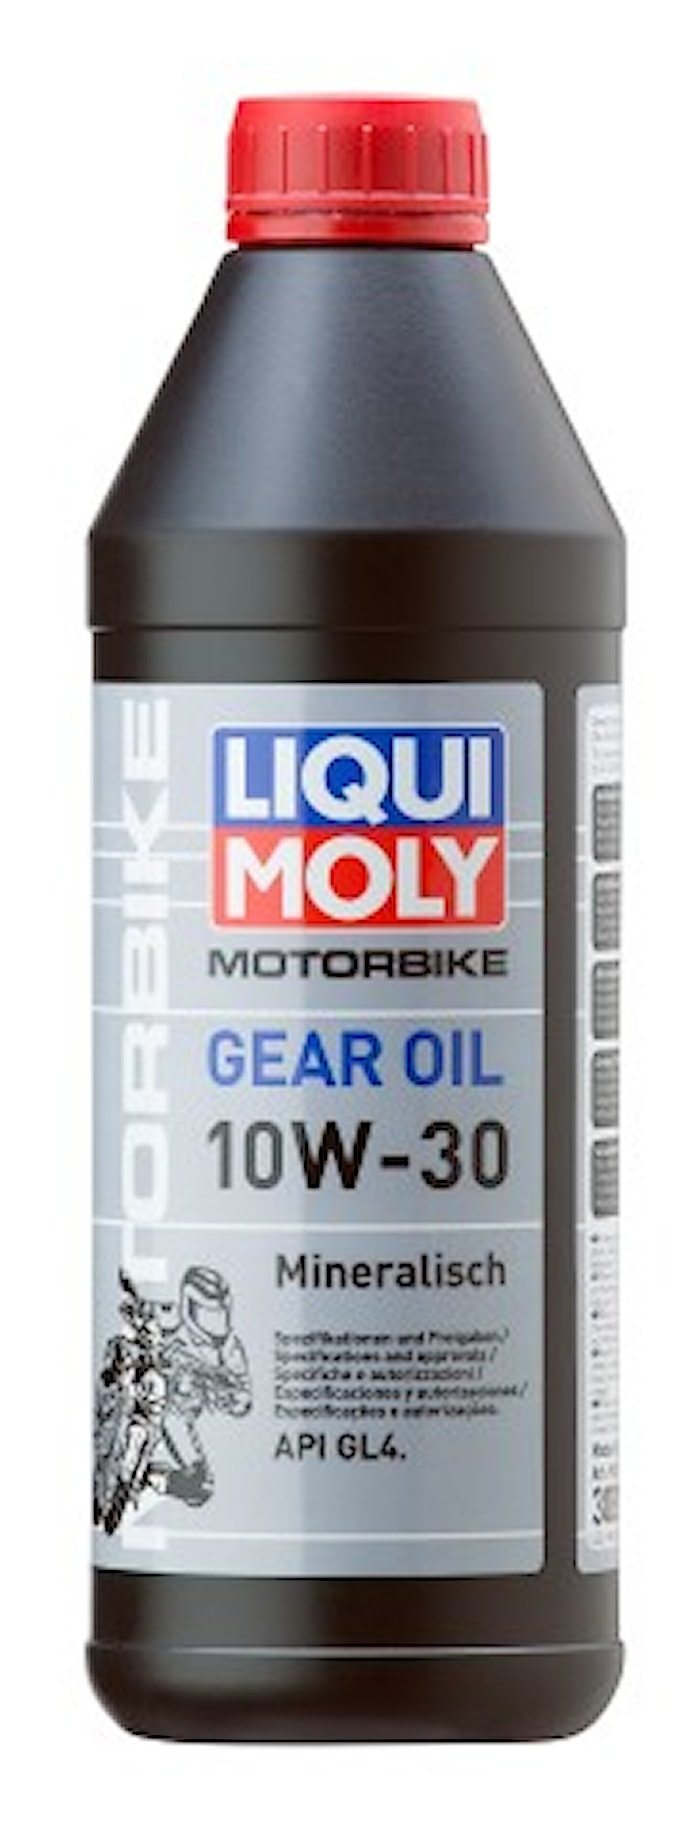 Bike Gear Oil 10W-30 1l